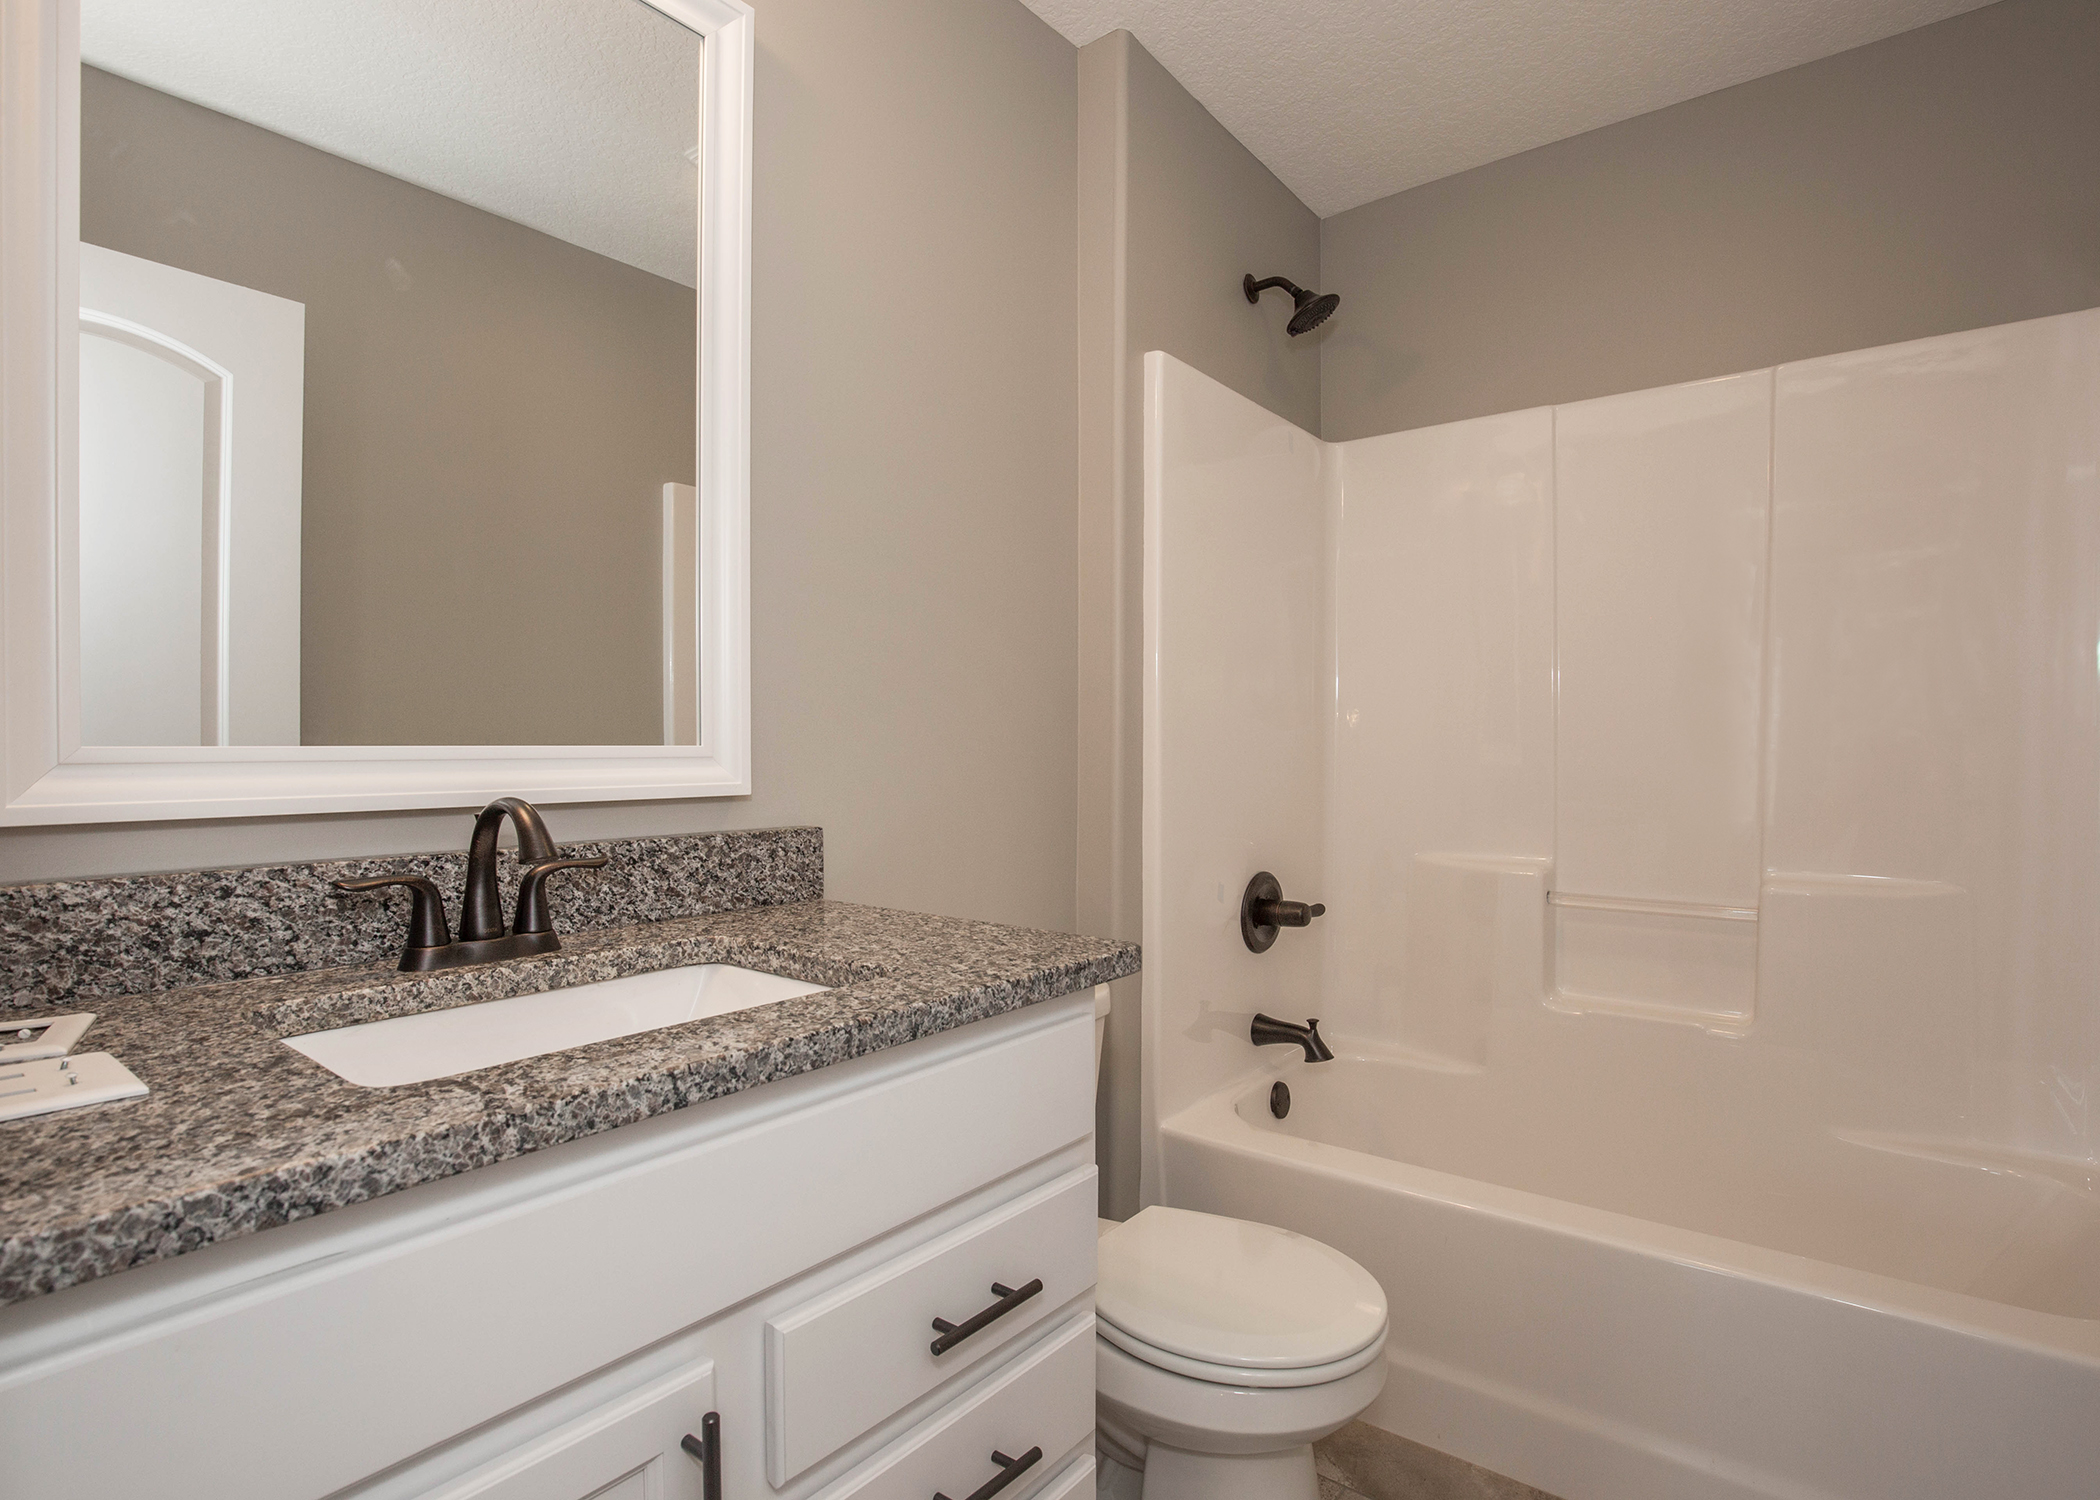 Bathroom with shower and tub combination and single sink vanity